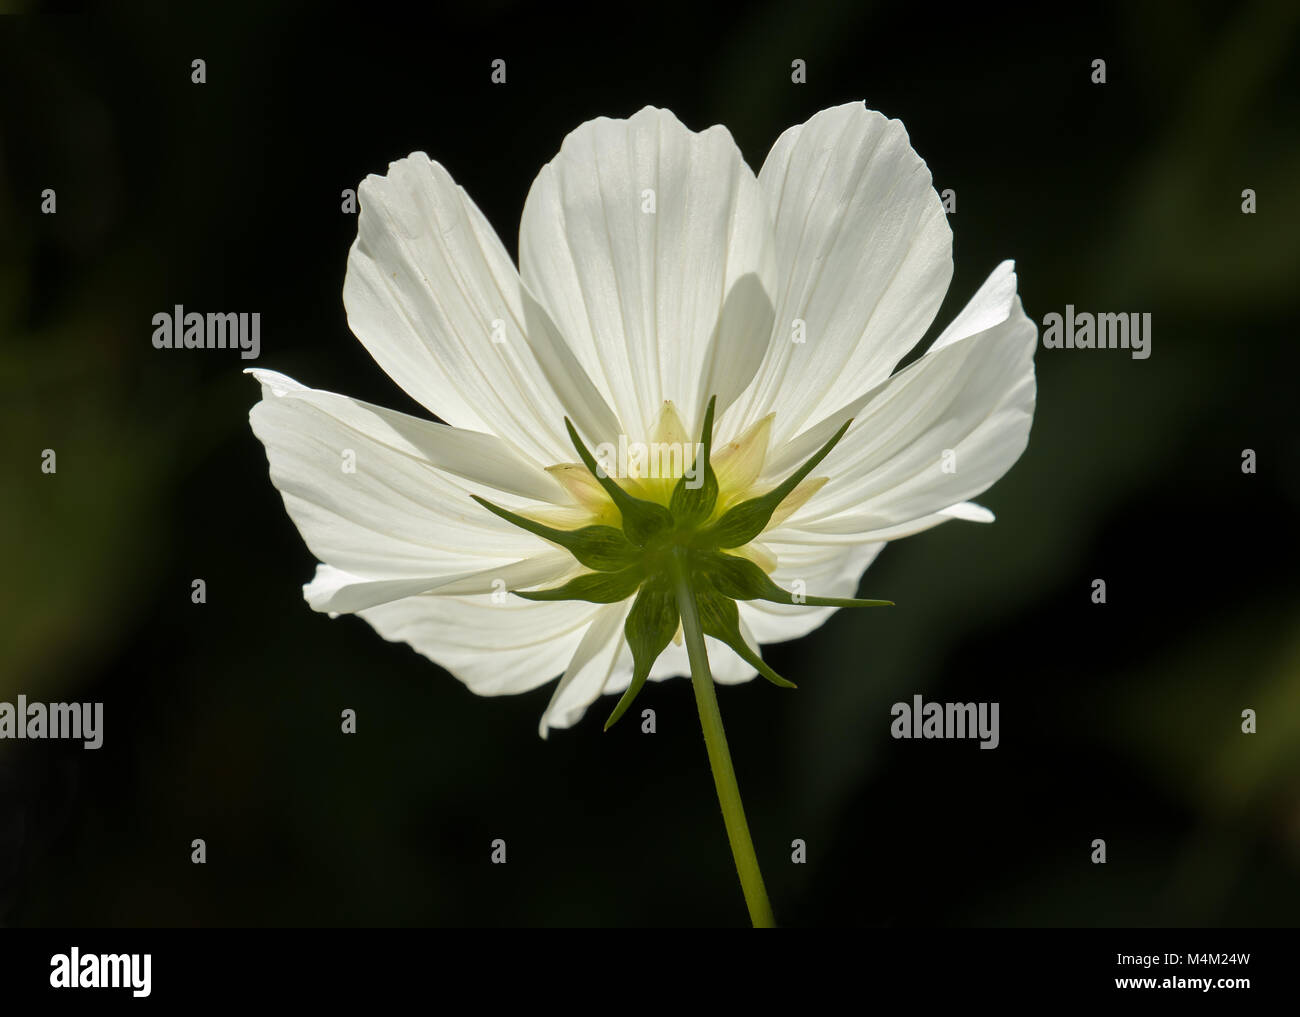 White Cosmos Flower Underside Stock Photo 175003049 Alamy